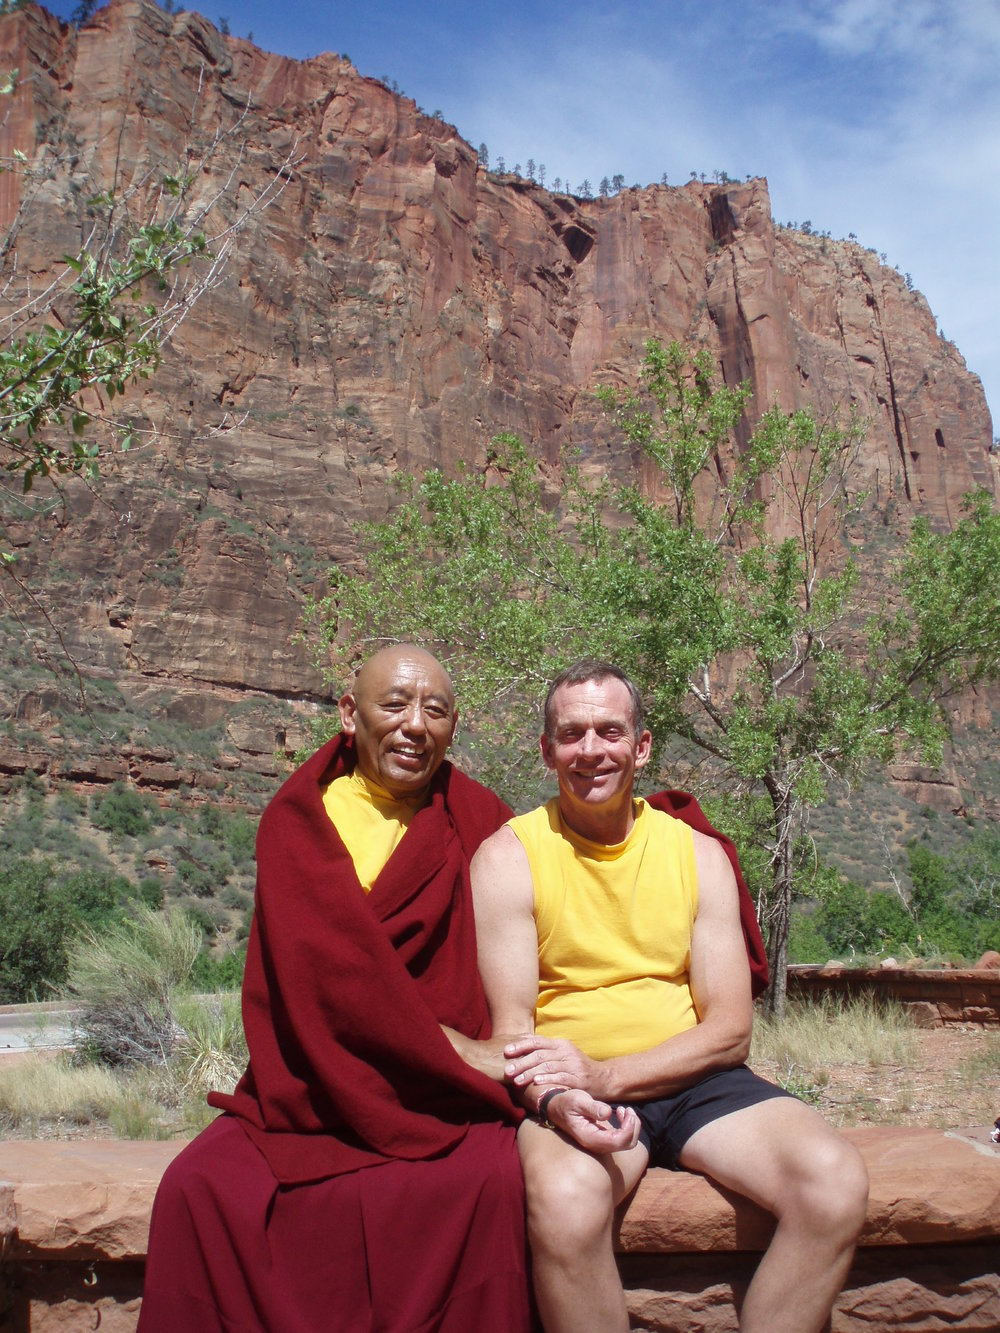 With Lama Samten  in Zion National Park, Utah